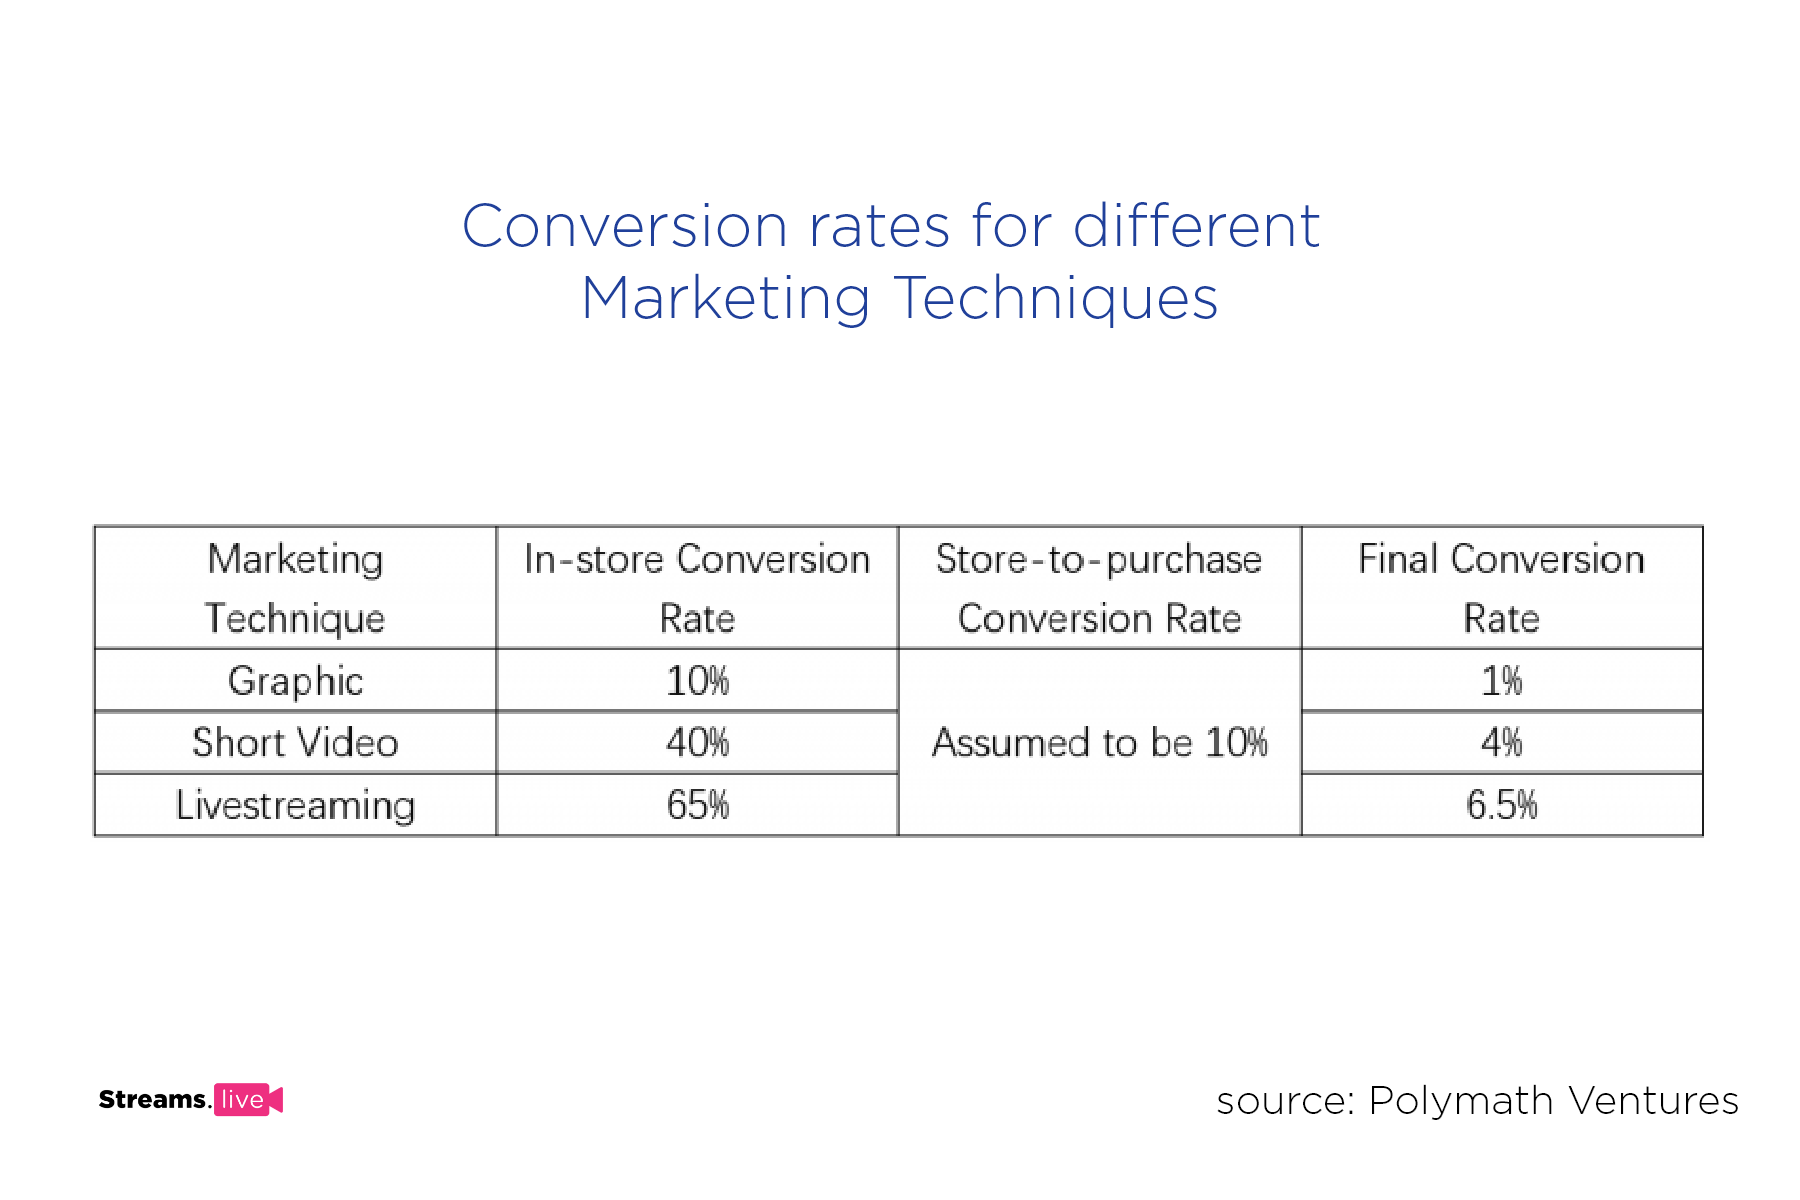 graph showing different eCommerce conversion rates for different marketing techniques